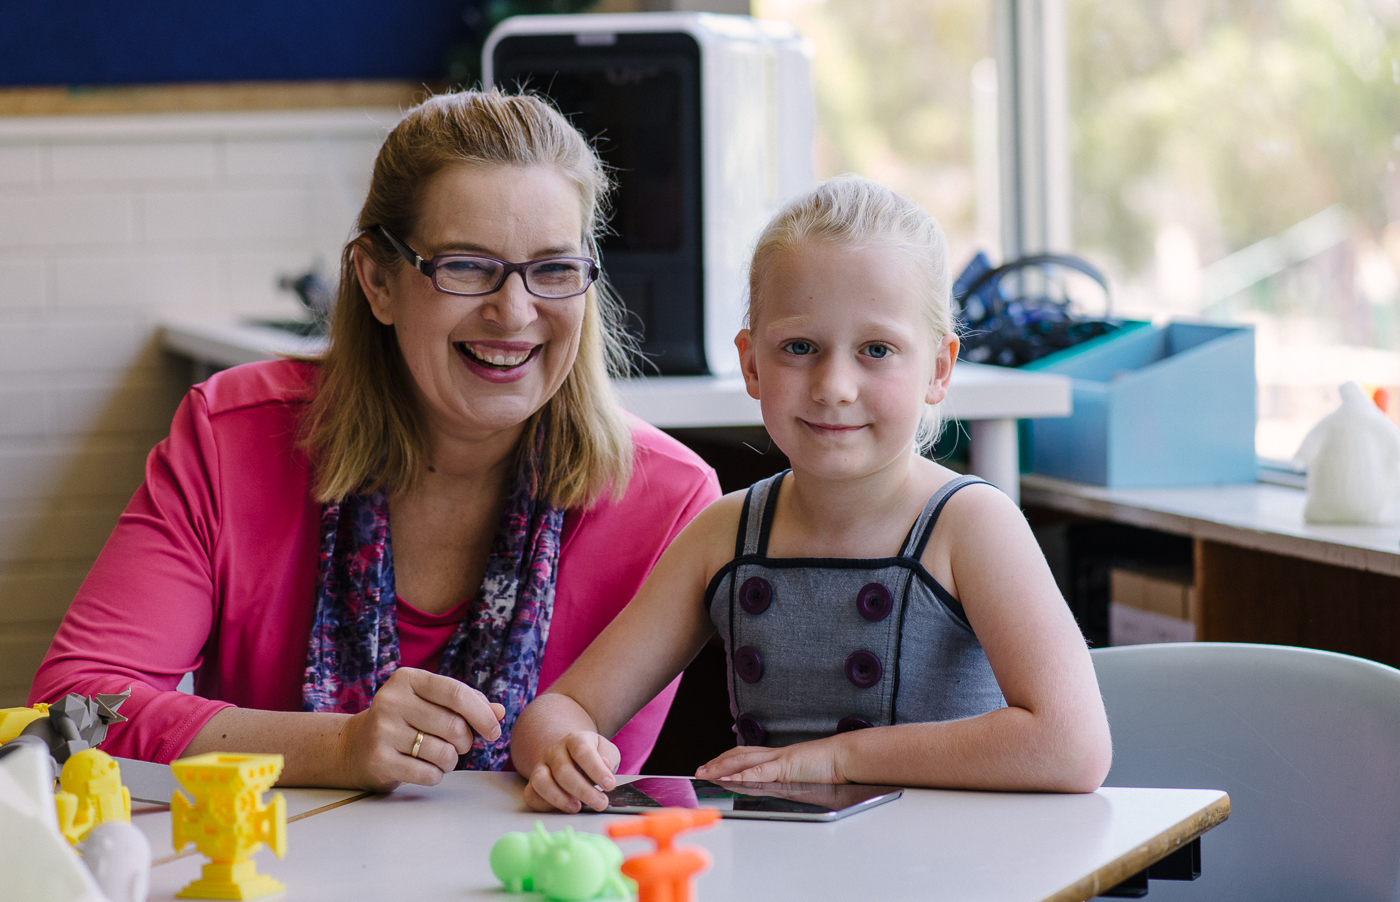 Mandi Dimitriadis, Director of Learning, is a finalist in the Winnovation Awards